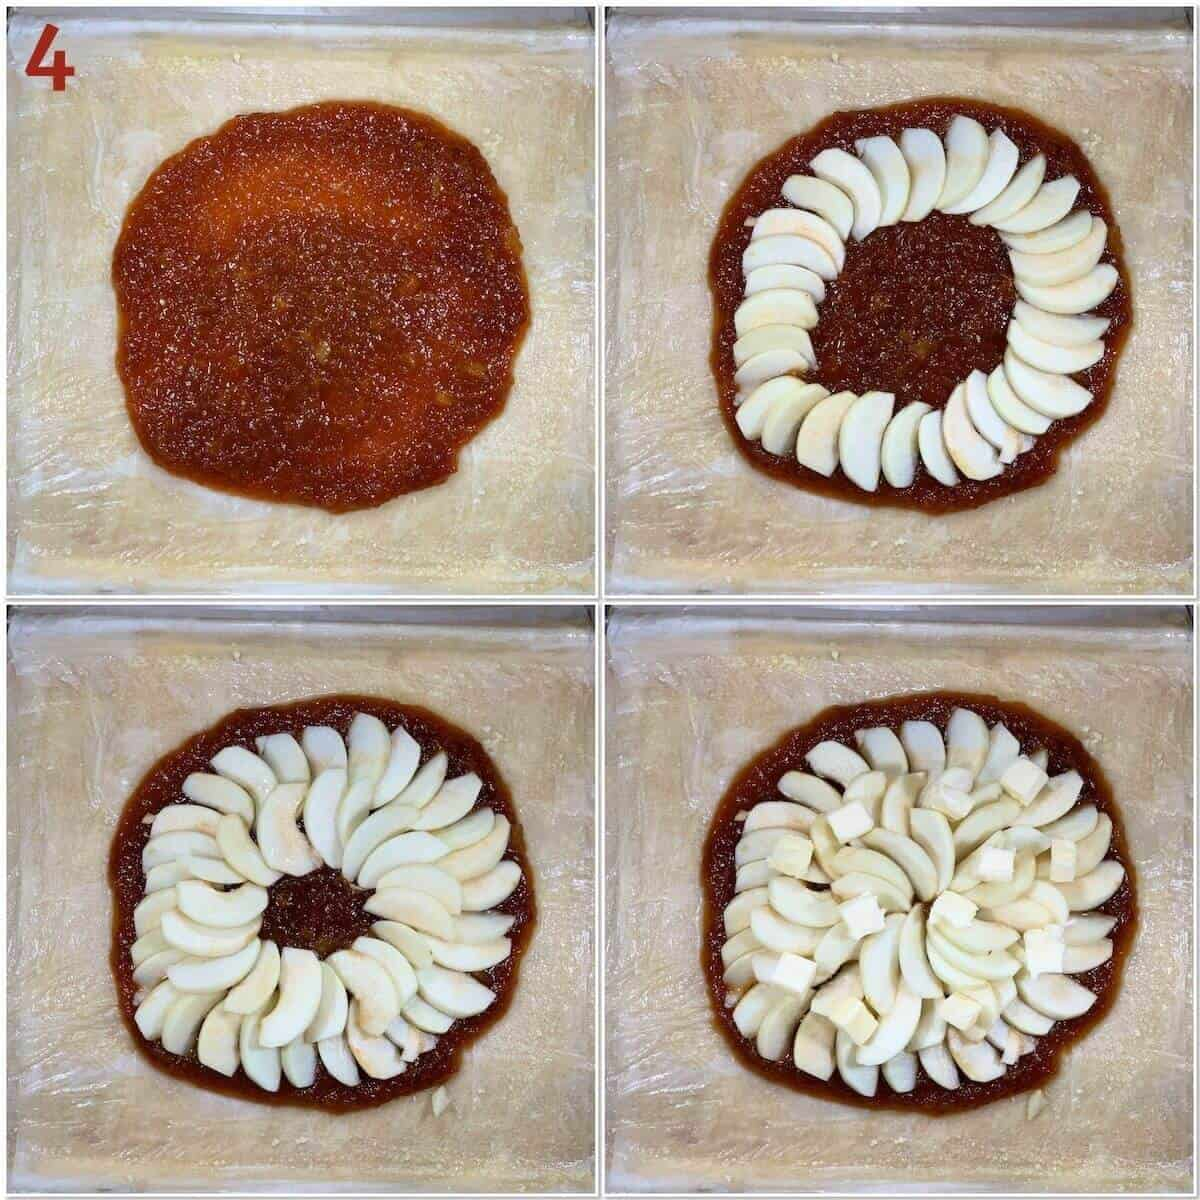 Collage of placing the applesauce & apples on the phyllo dough.